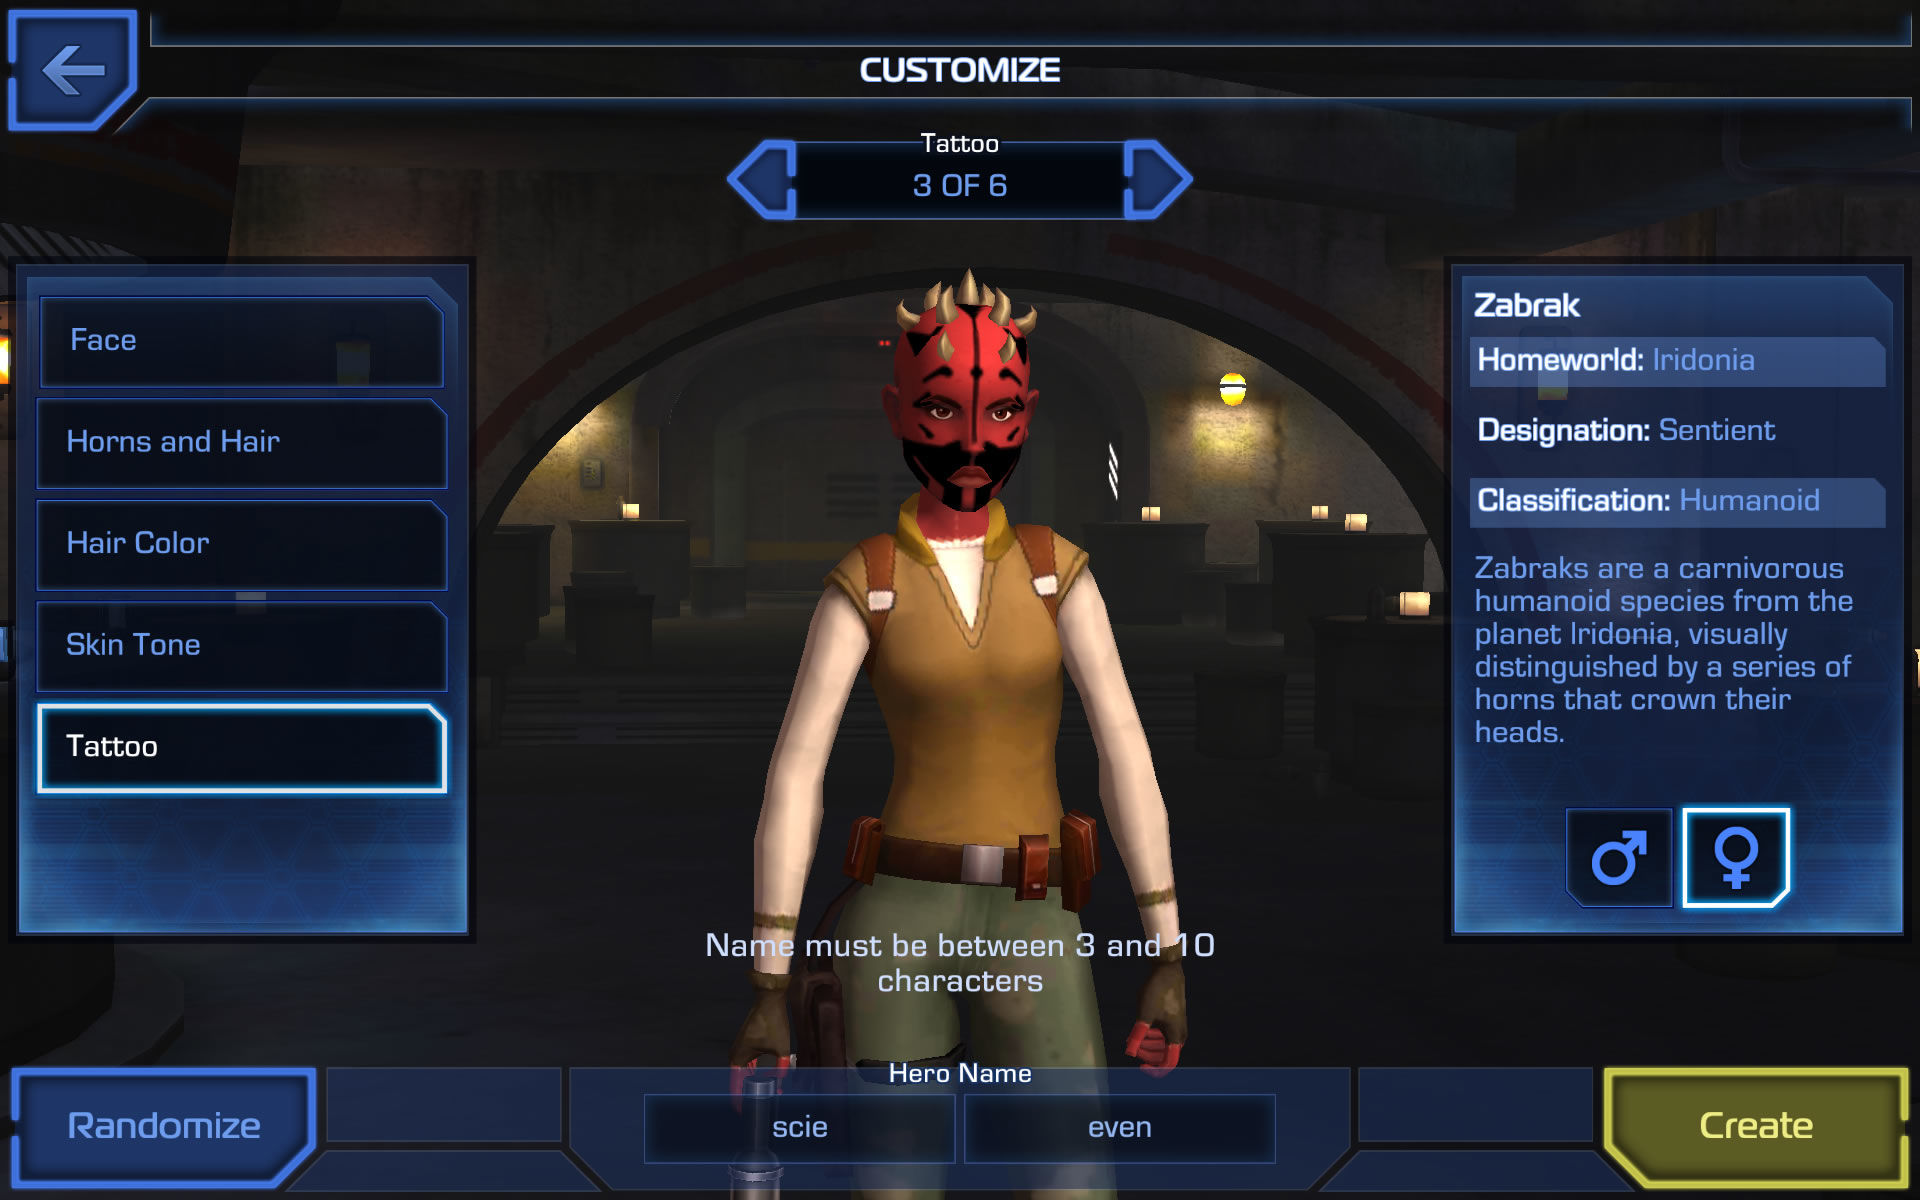 Star Wars: Uprising Android Further customize the character's appearance and provide a name.